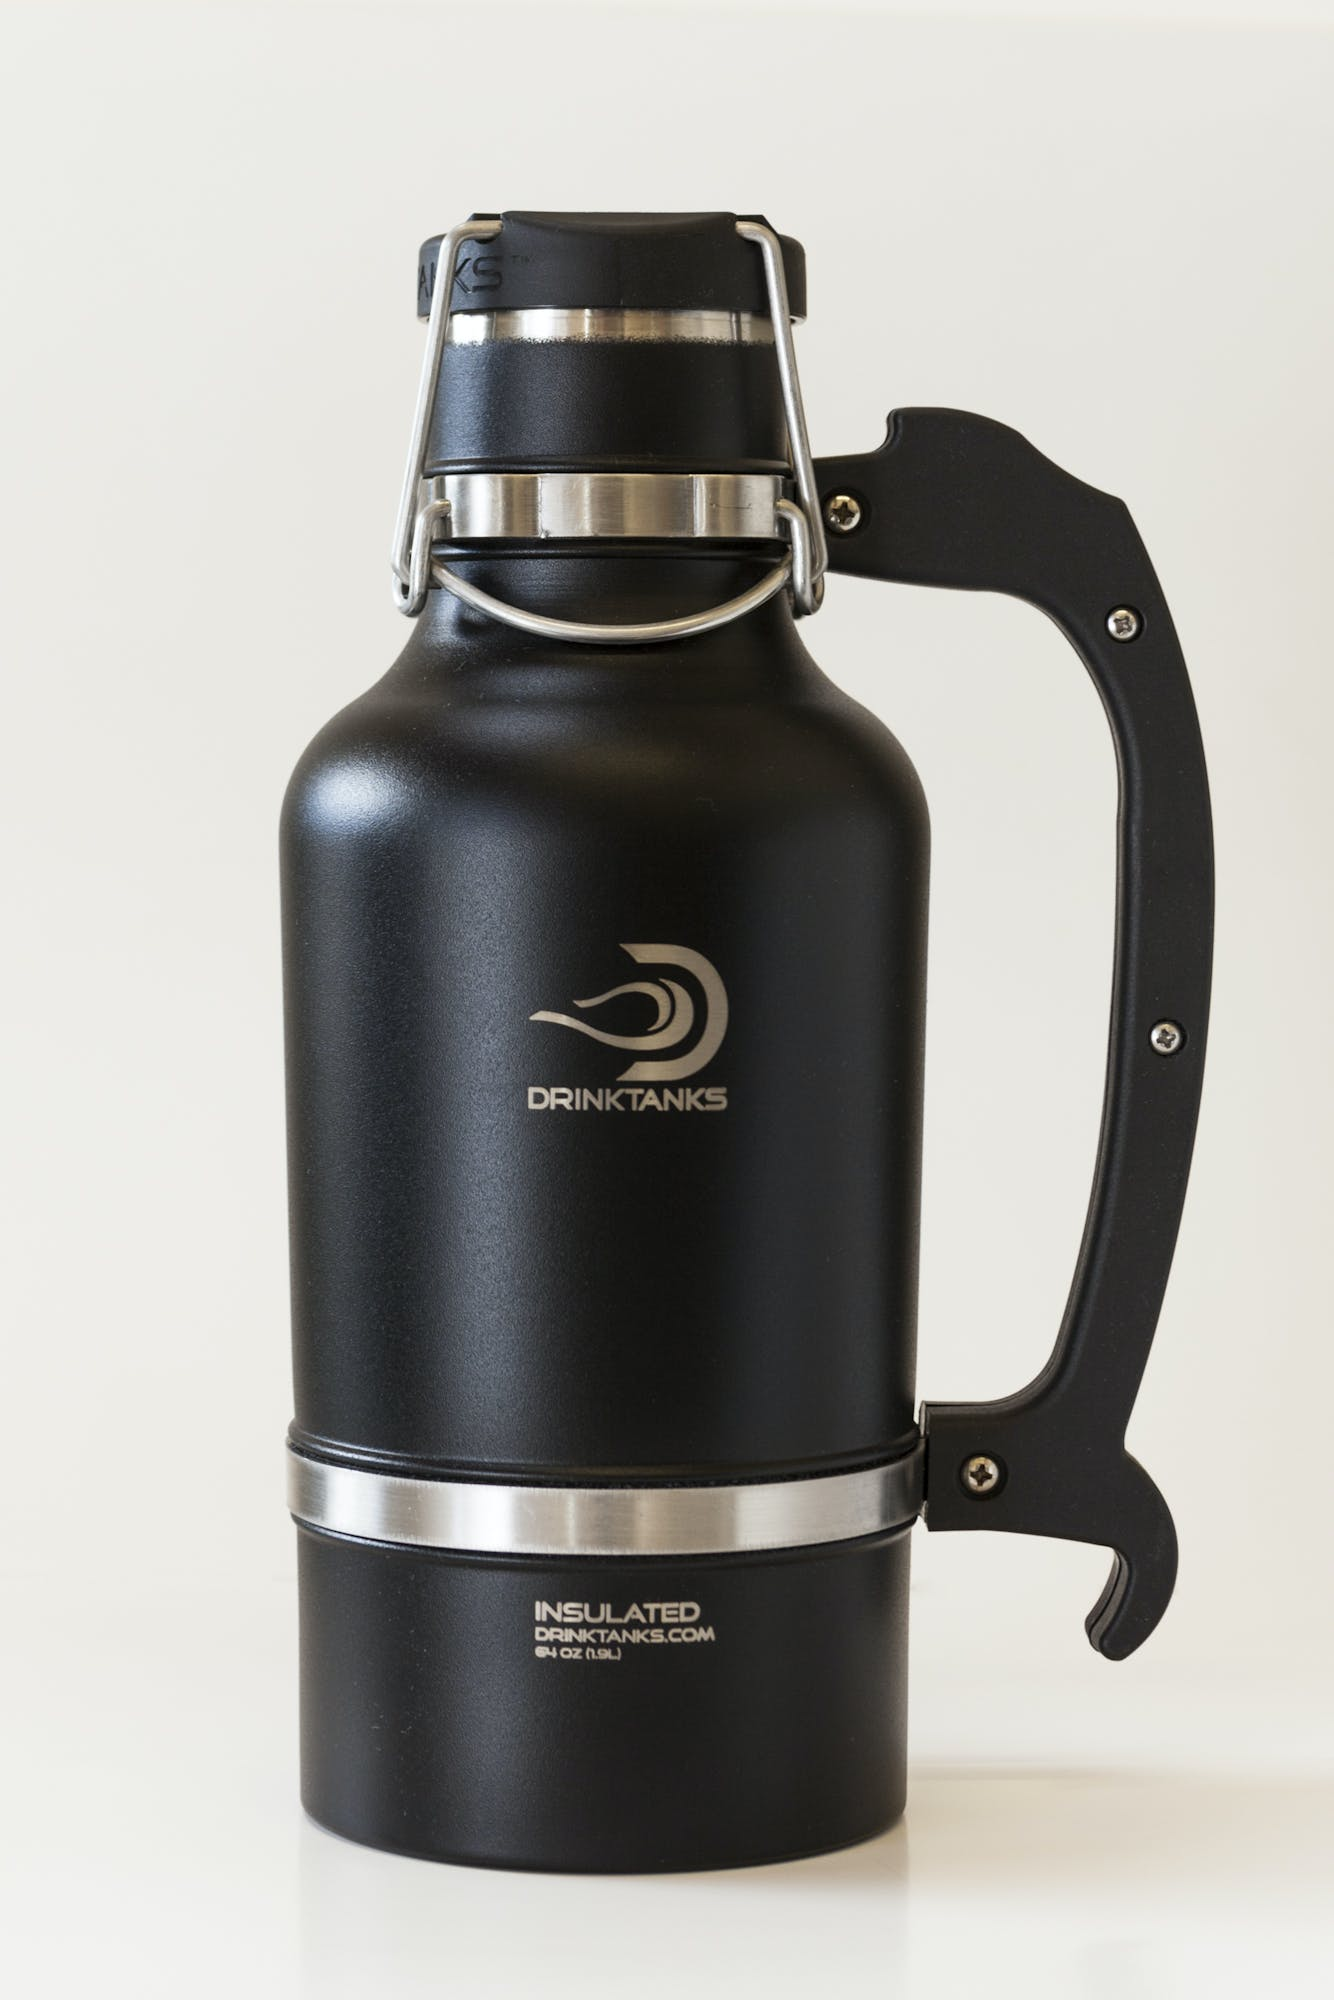 Drink Tanks Growler - Enjoy beer exactly as it was intended. Cold. Fresh. Carbonated. - 64oz Capacity (Black) Growler sold by Drink Tanks